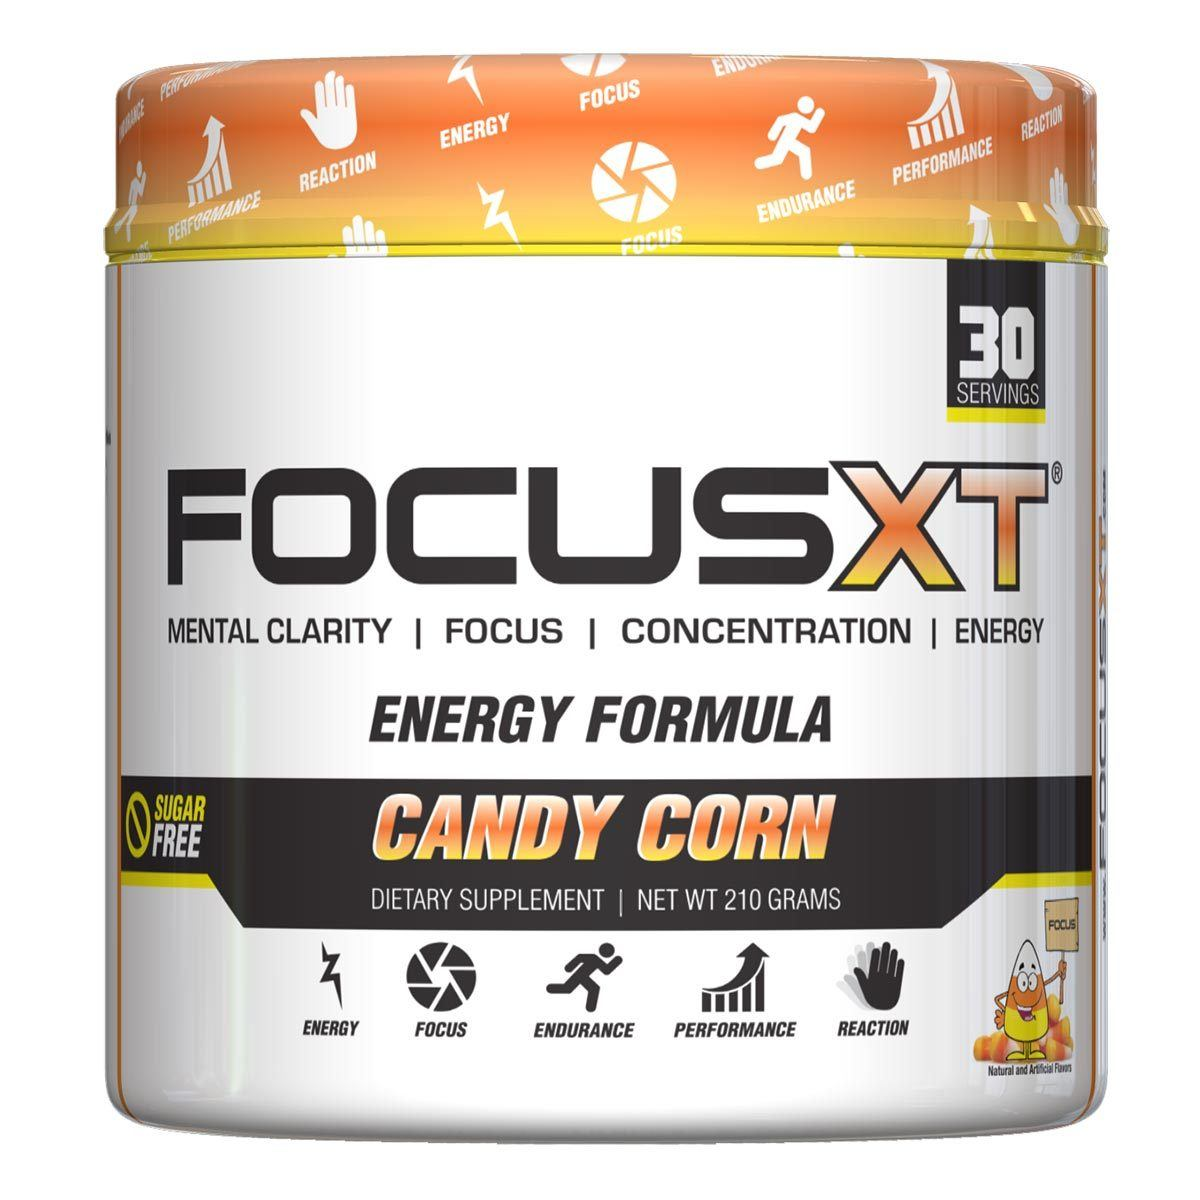 Serious Nutrition Solutions Focus XT 30 Servings Cognitive Serious Nutrition Solutions Candy Corn  (1058664415275)